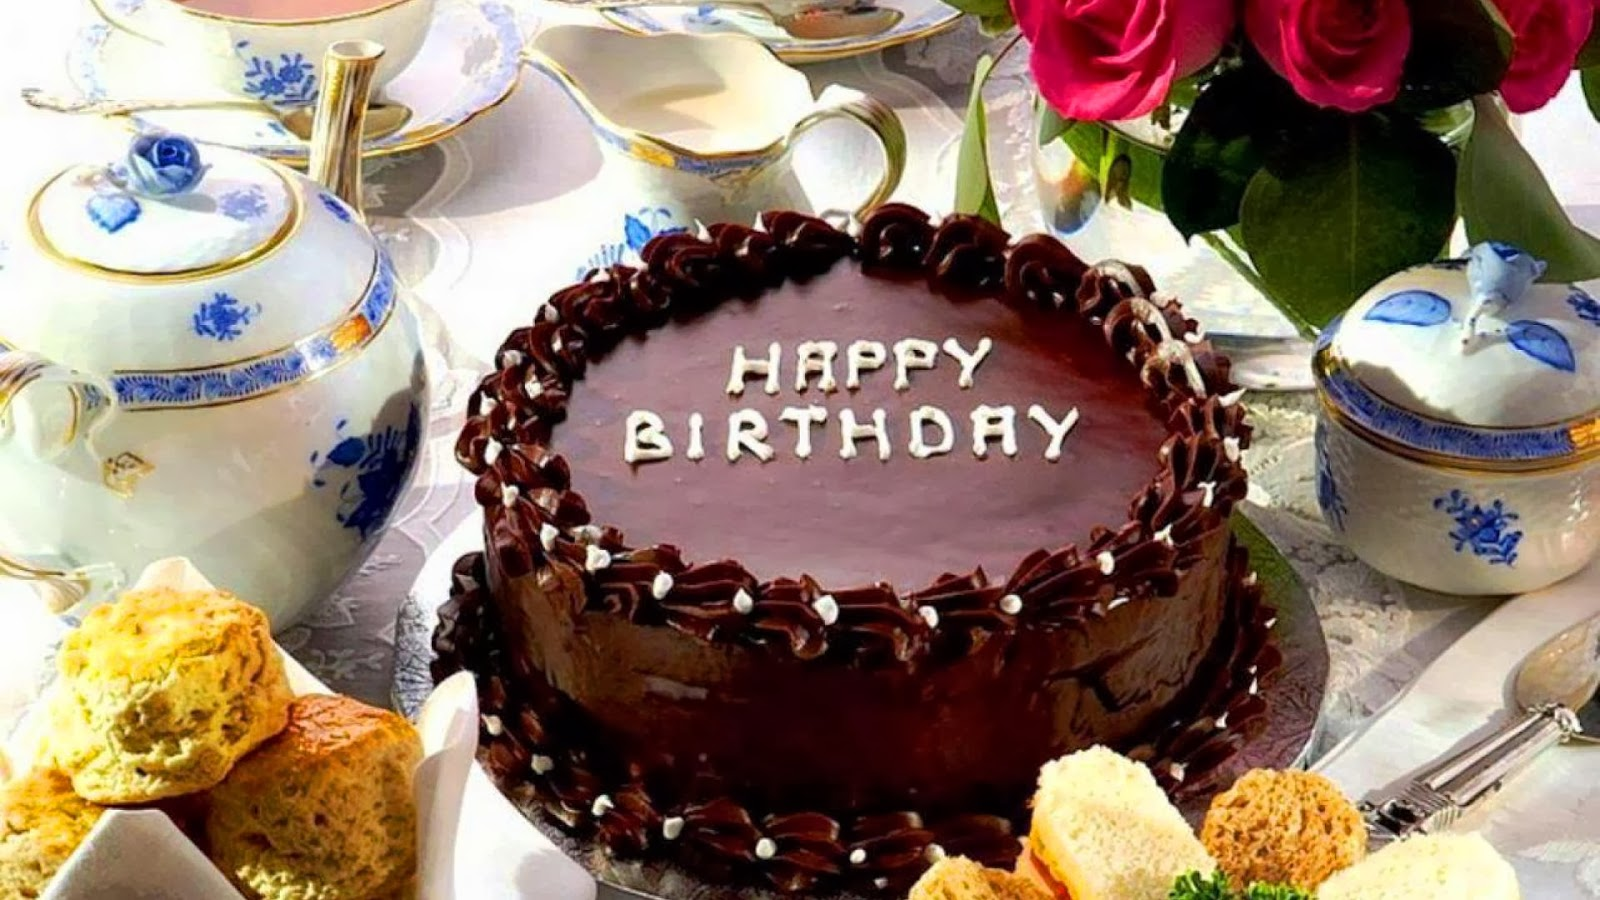 new birthday images free download ; 37183190-happy-birthday-cake-wallpaper